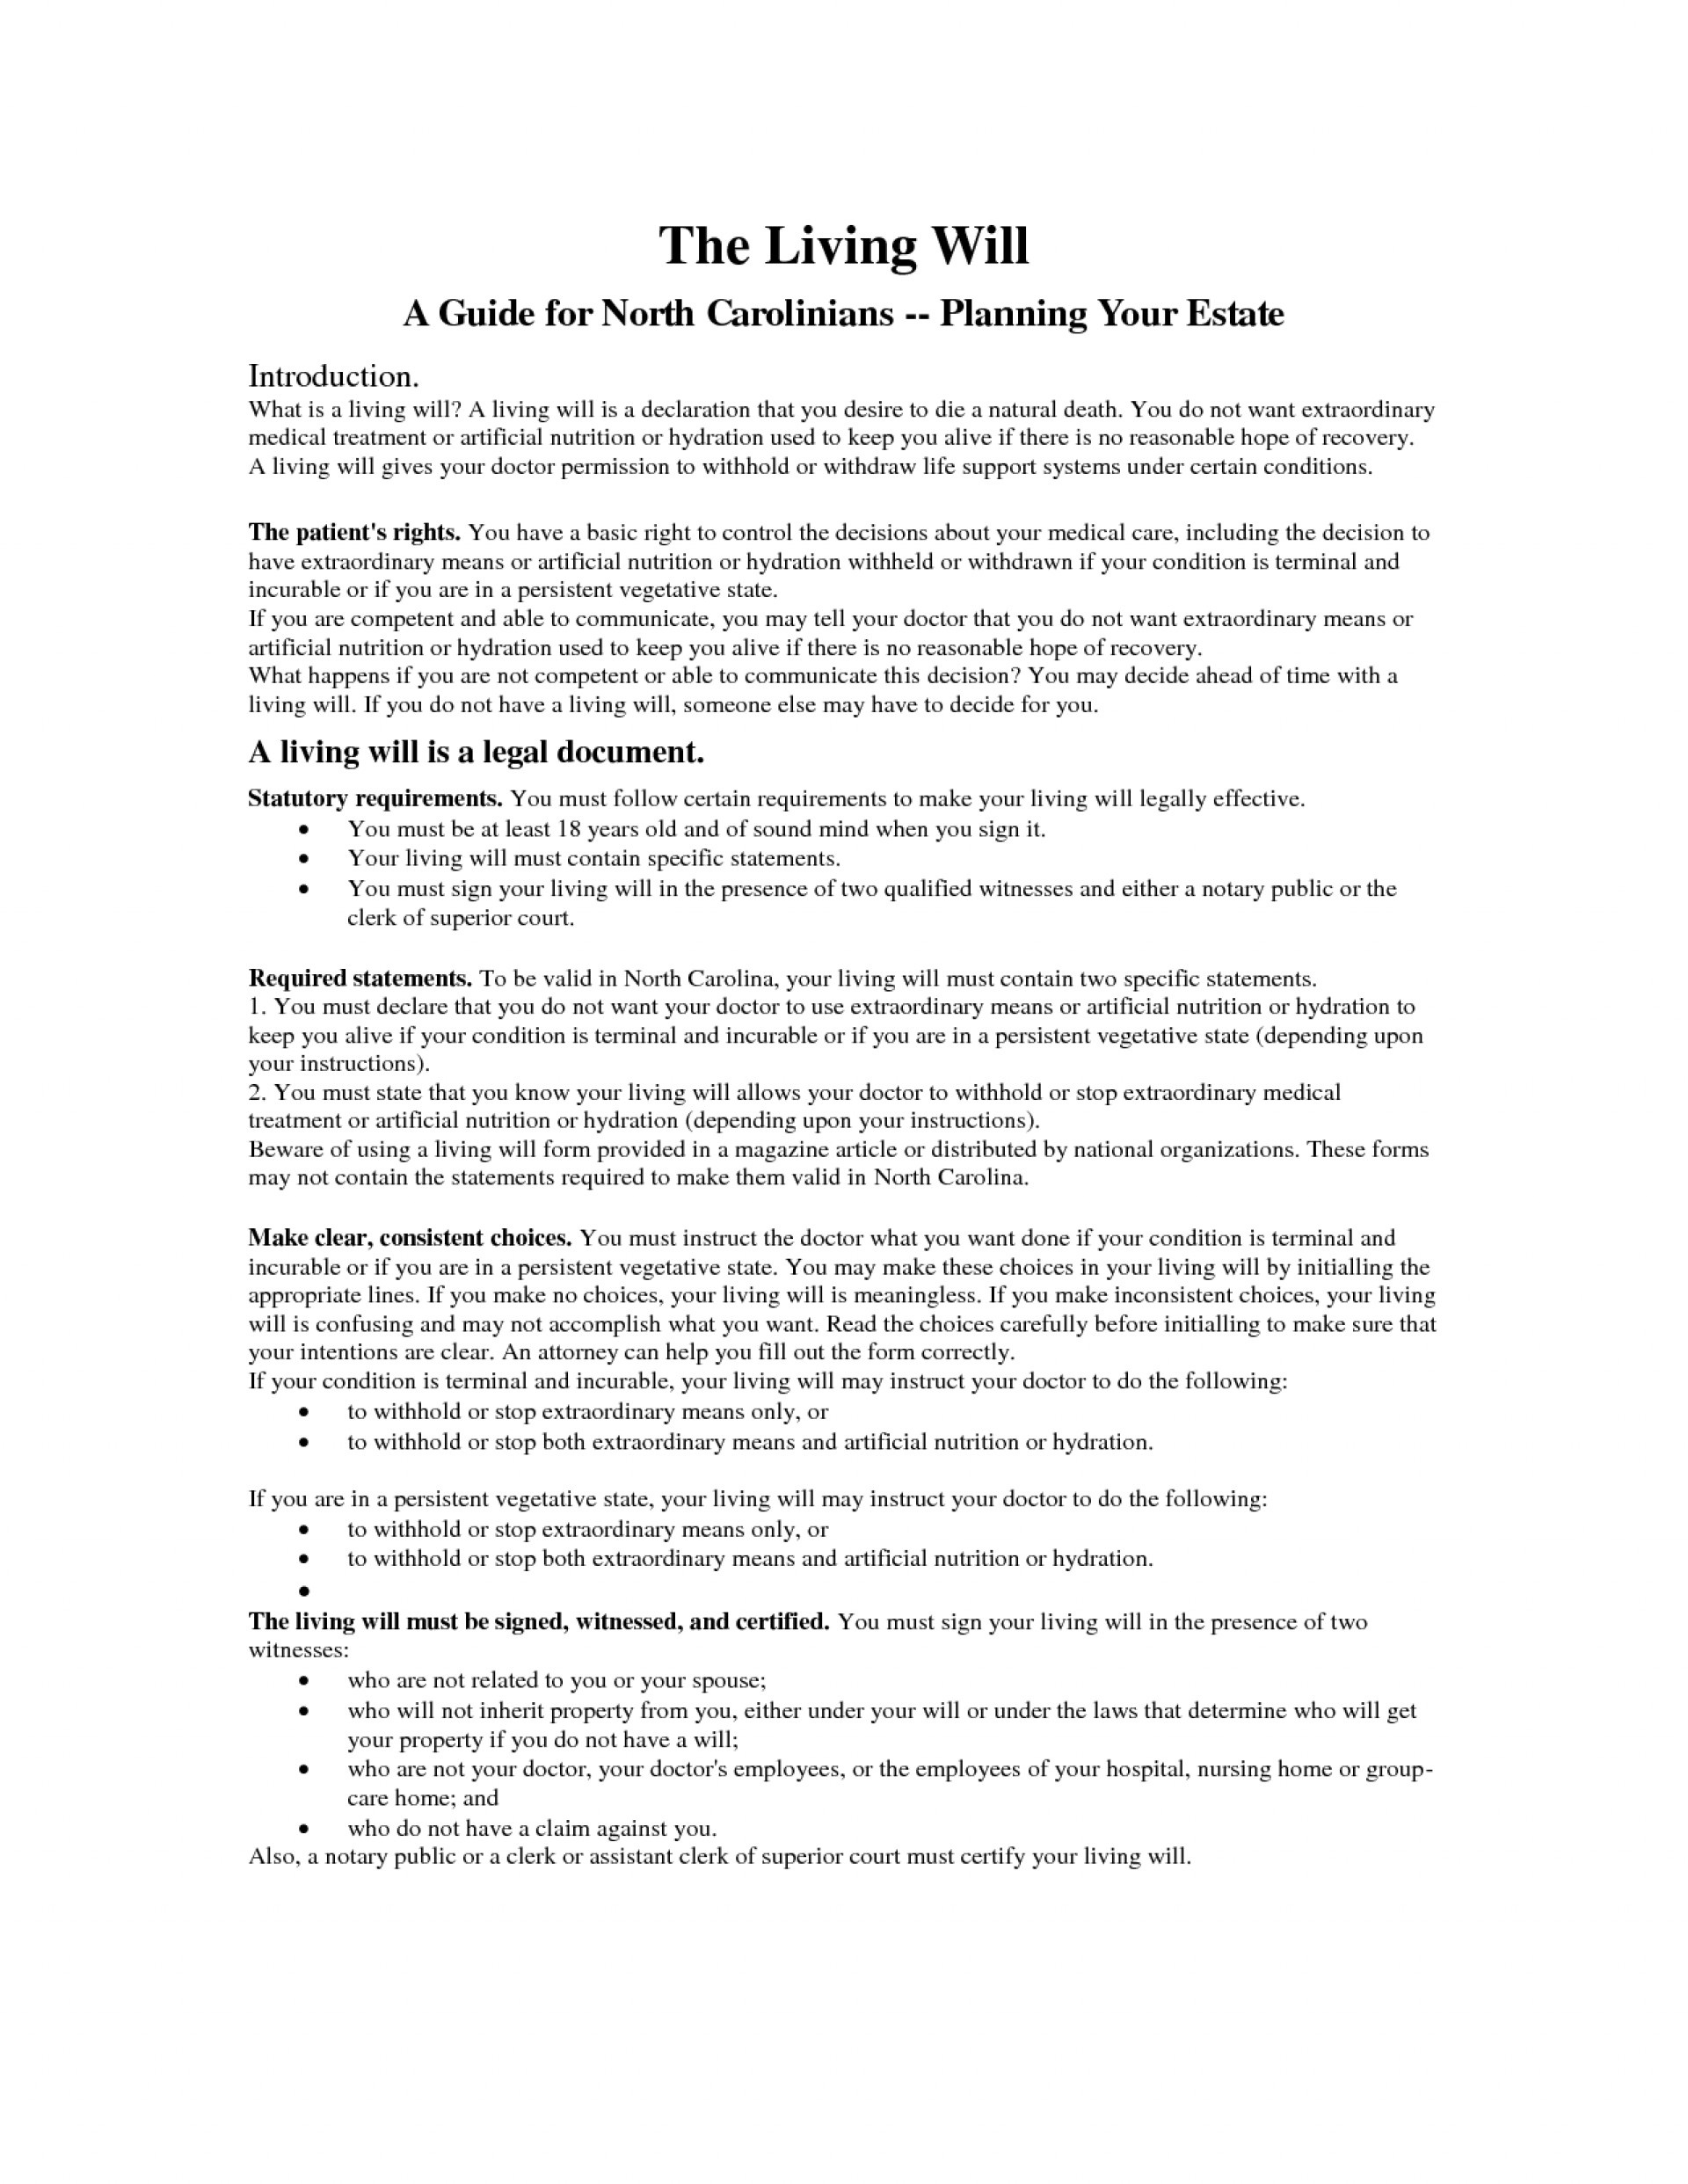 014 Free Living Will Forms To Print Rhode Island Advance Health Care - Free Printable Living Will Forms Washington State